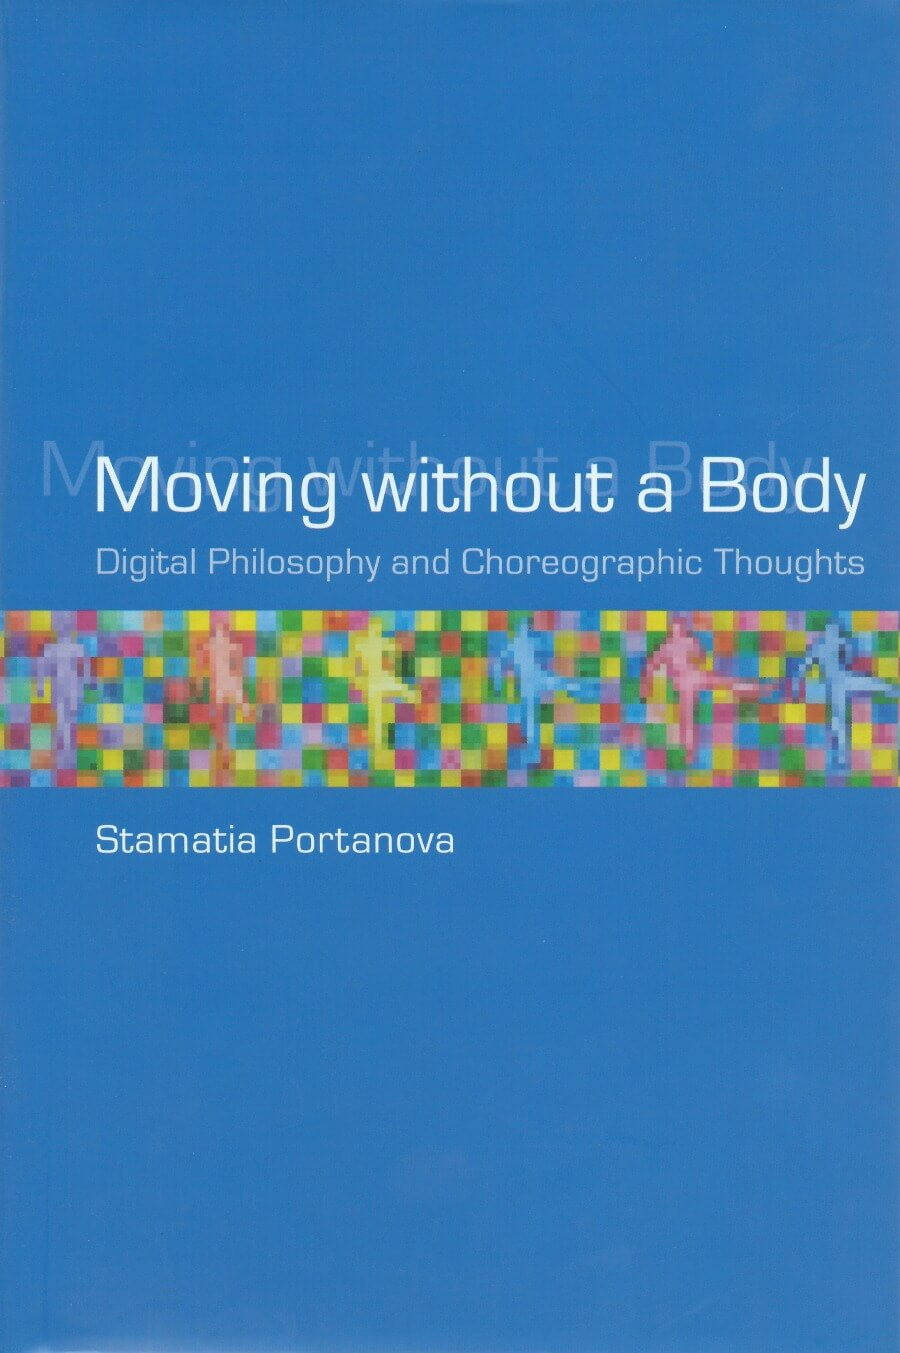 Moving without a Body - Digital Philosophy and Choreographic Thoughts